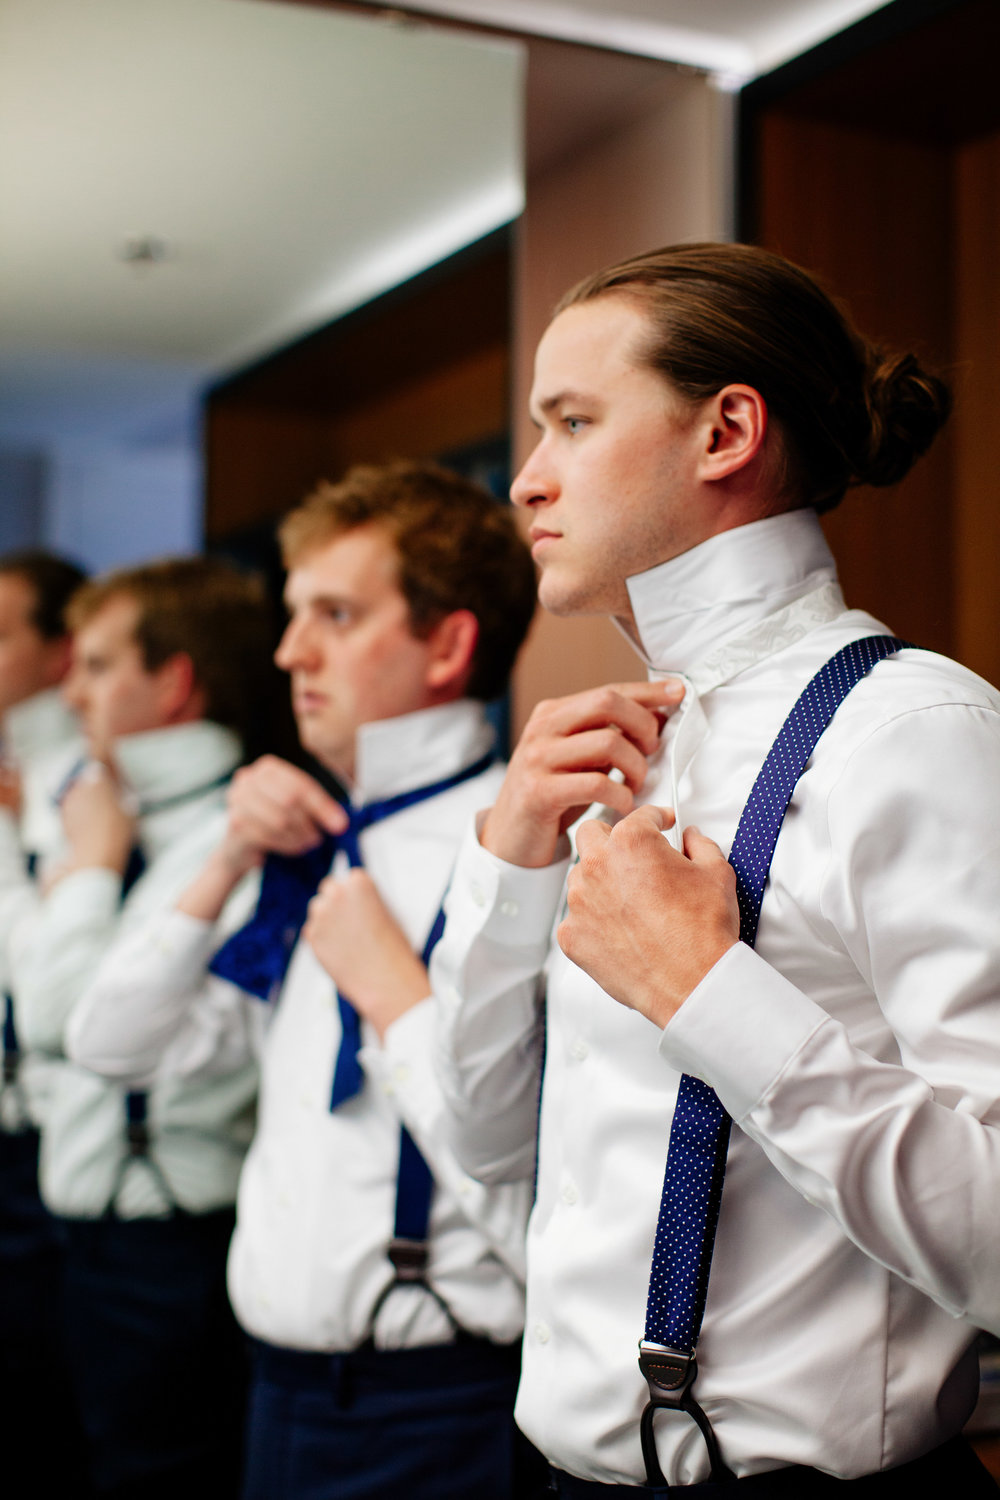 How to Capture Your Getting Ready Photos | Leah Fontaine Photography | Getting ready photos with groomsmen in white shirts and suspenders